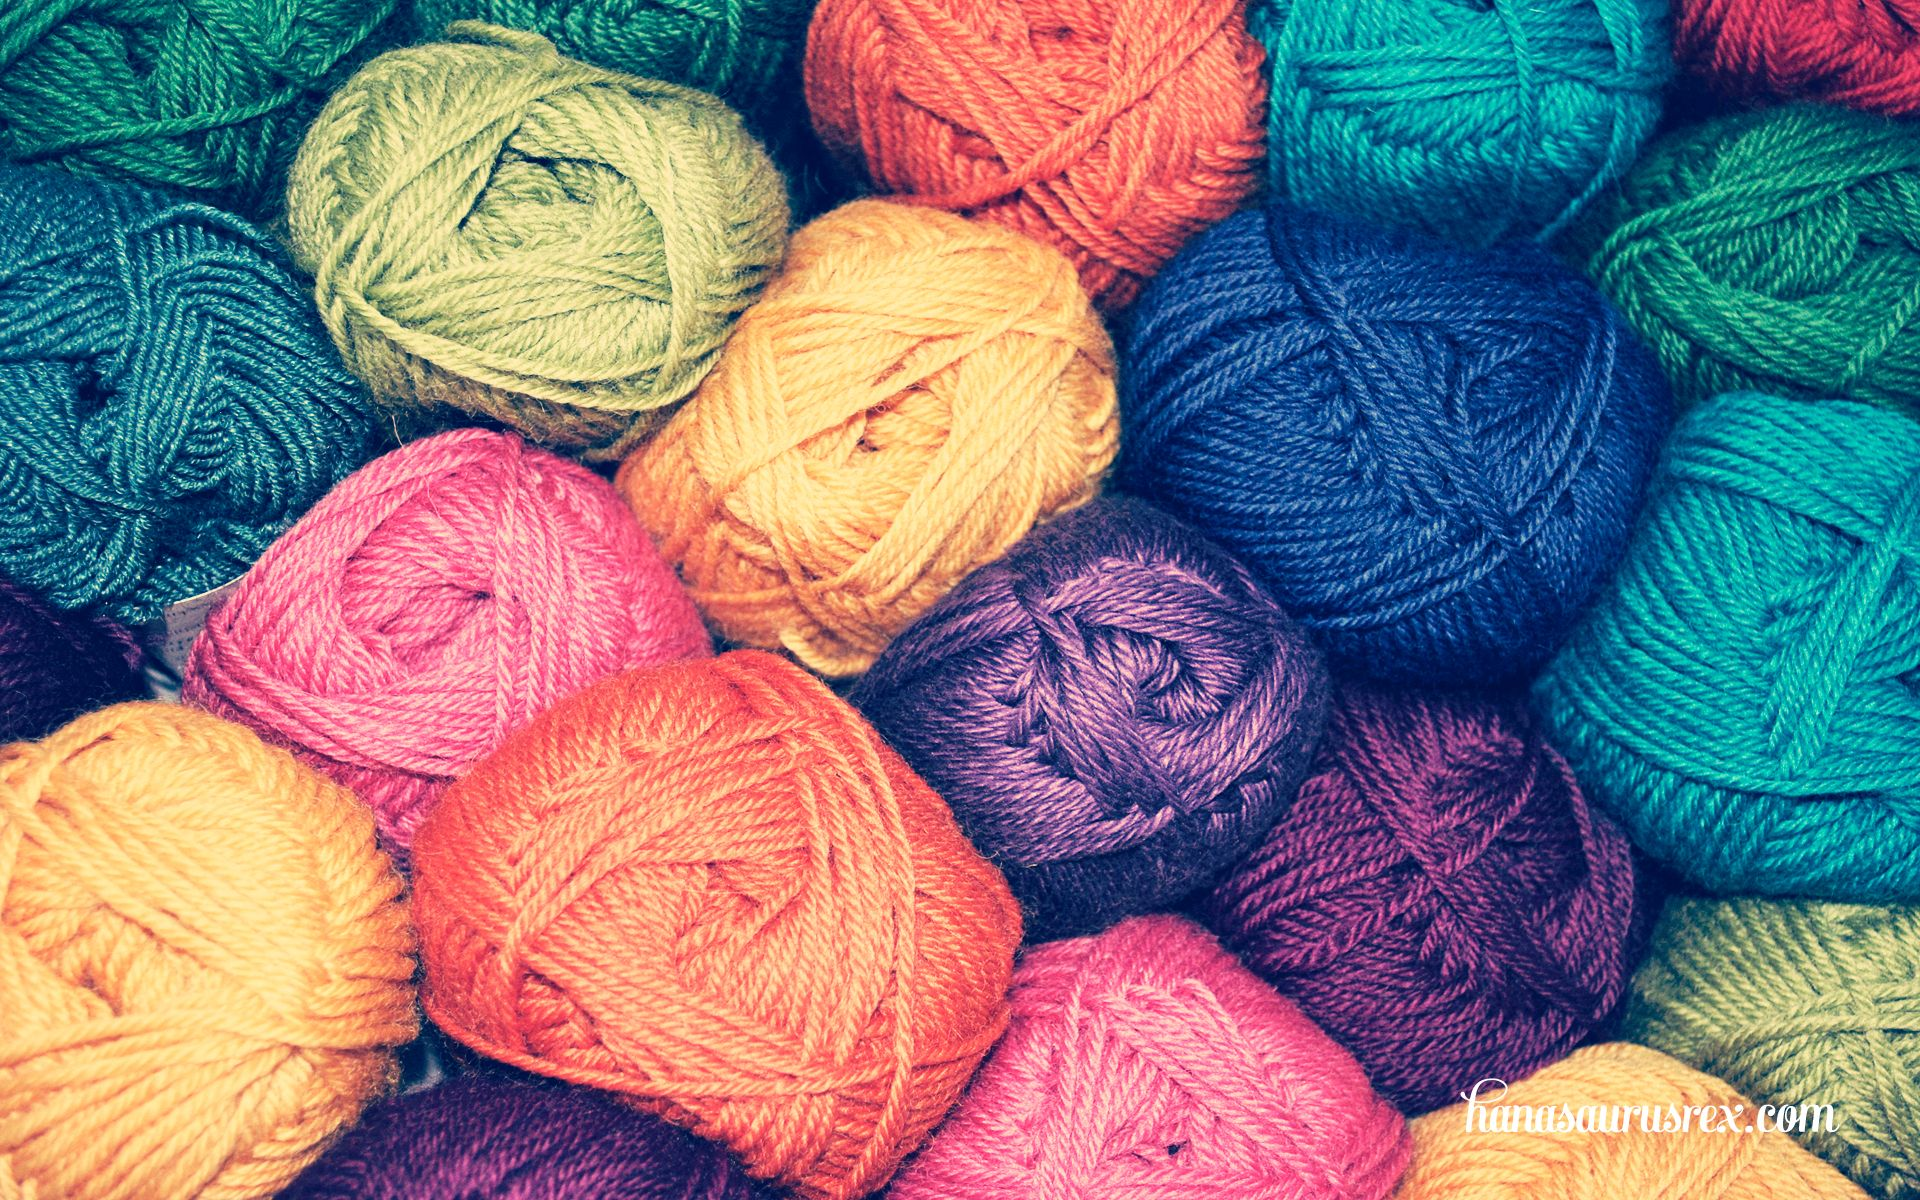 Crochet Knitting Yarn : Crochet Fridays - Crocheters in Central CT (Plainville, CT) Meetup